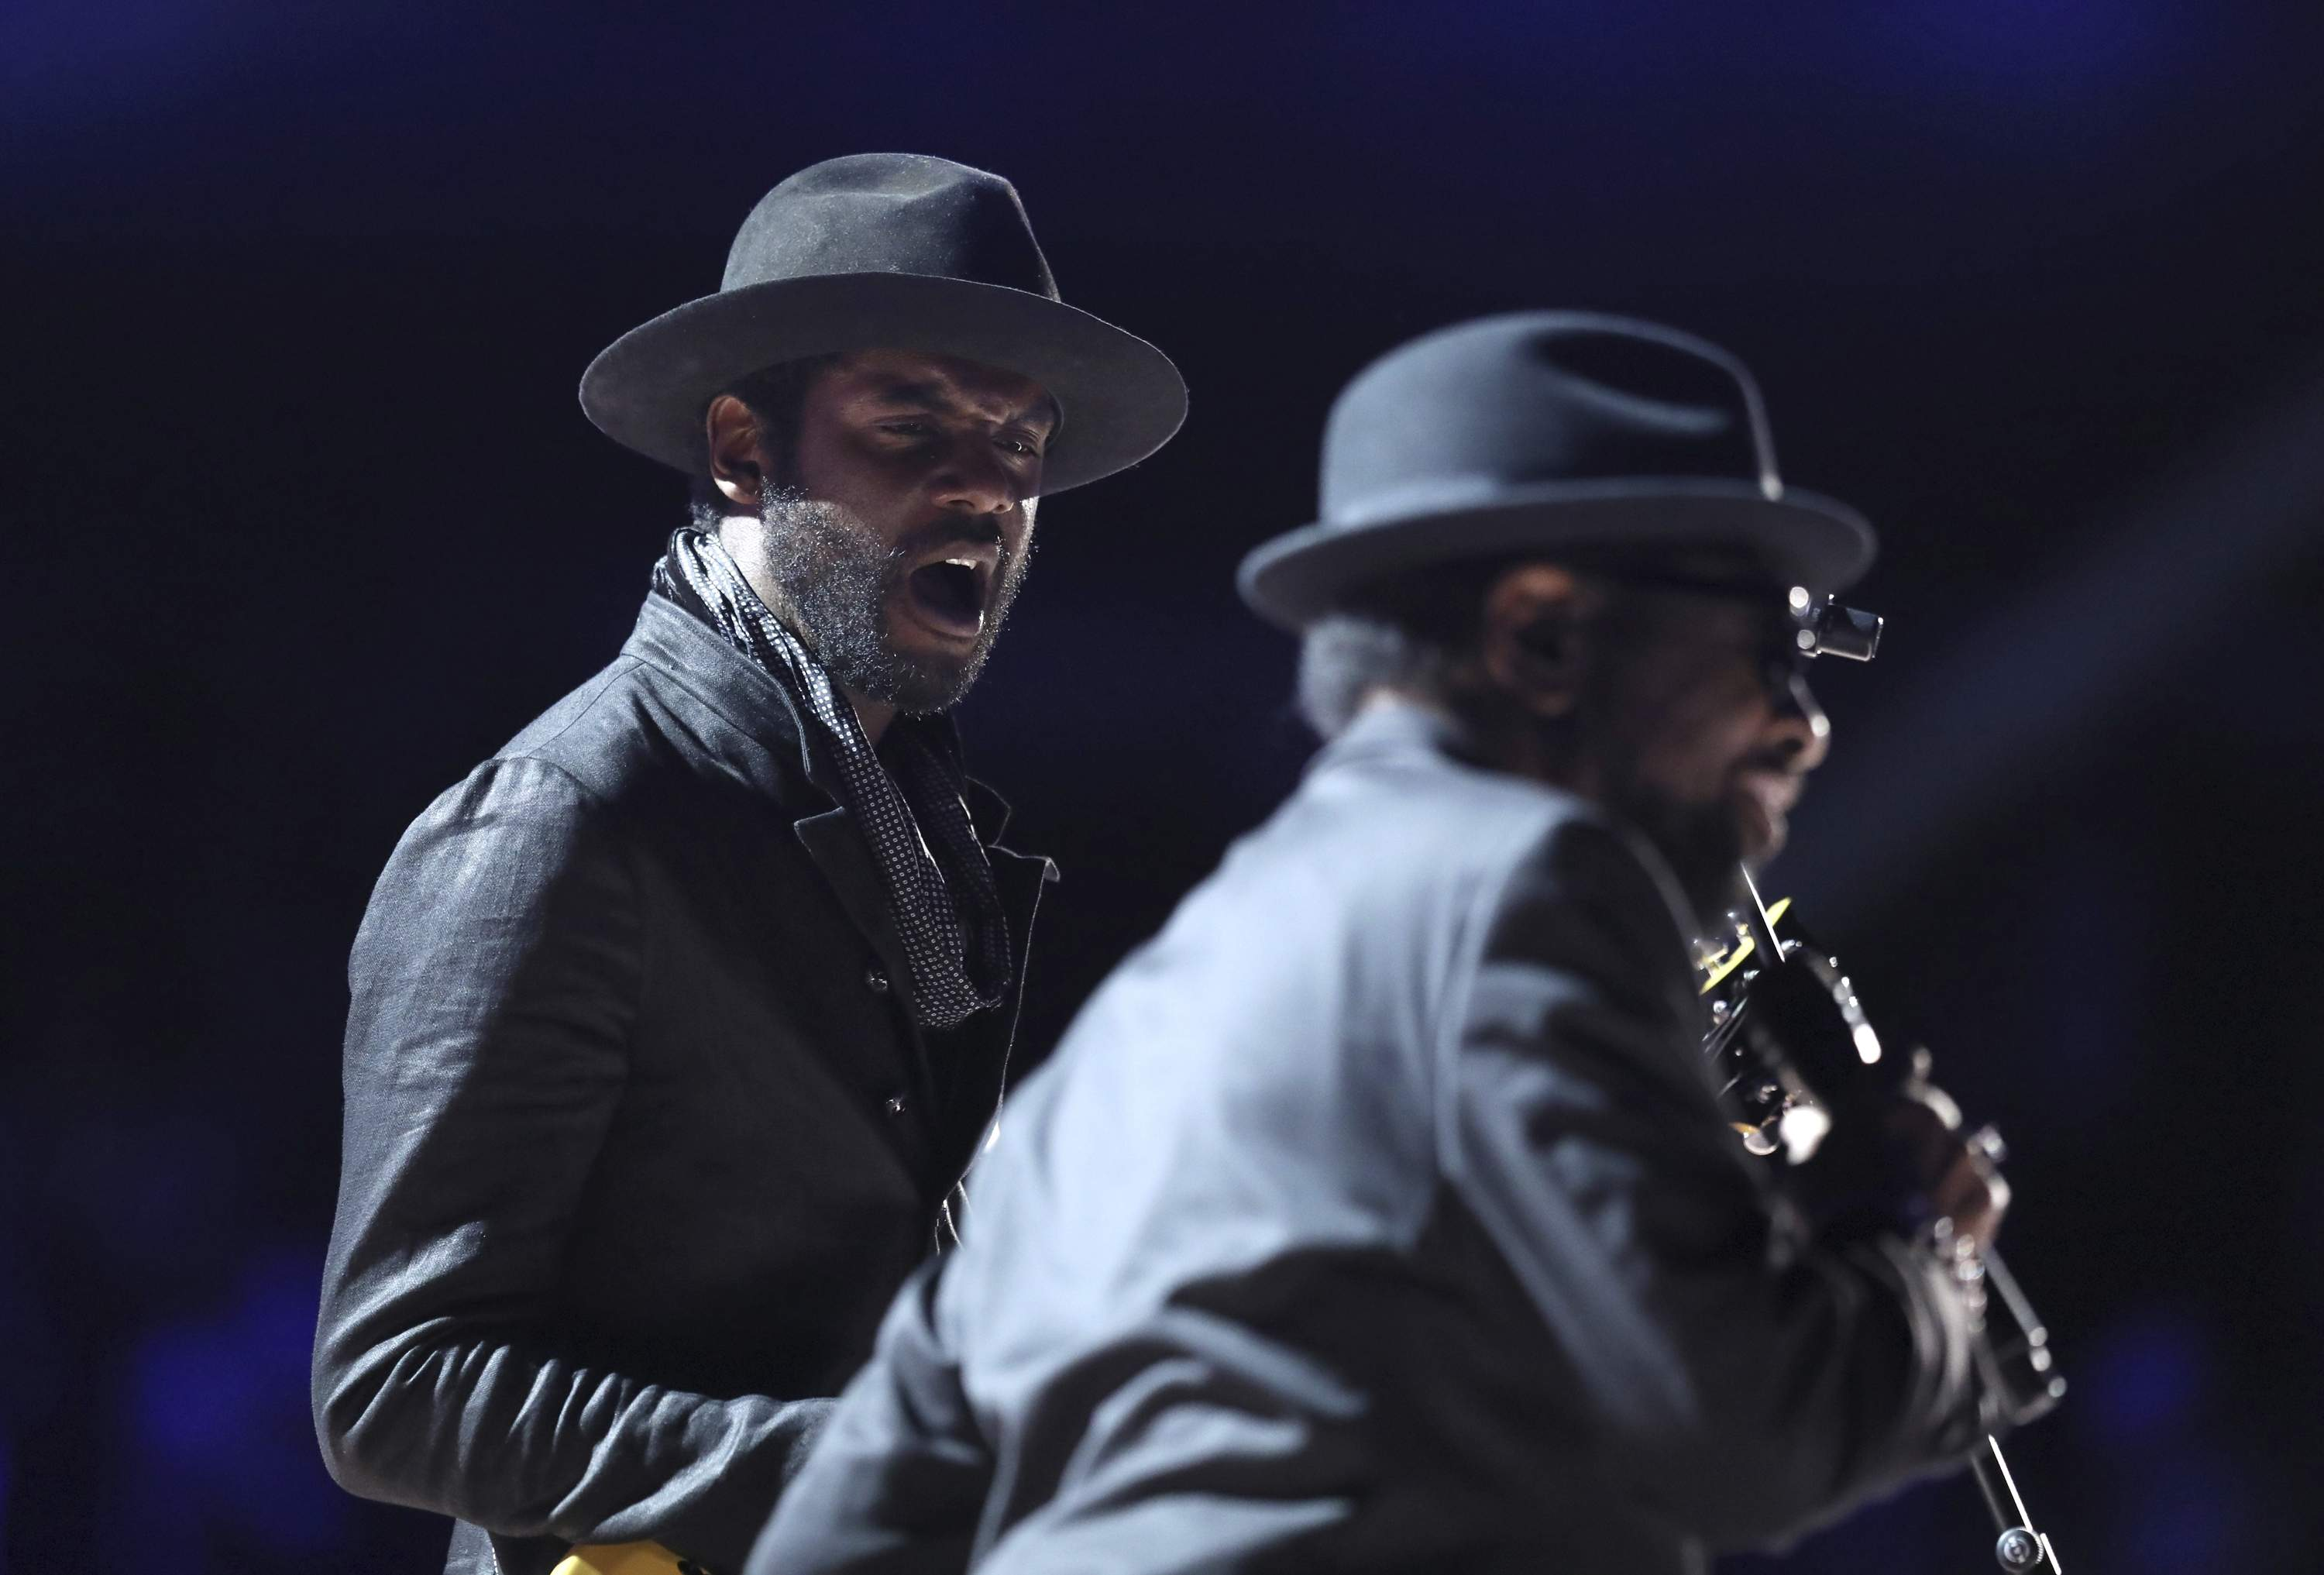 Gary Clark Jr., left, and William Bell perform 'Born Under a Bad Sign' at the 59th annual Grammy Awards on Sunday, Feb. 12, 2017, in Los Angeles. THE ASSOCIATED PRESS